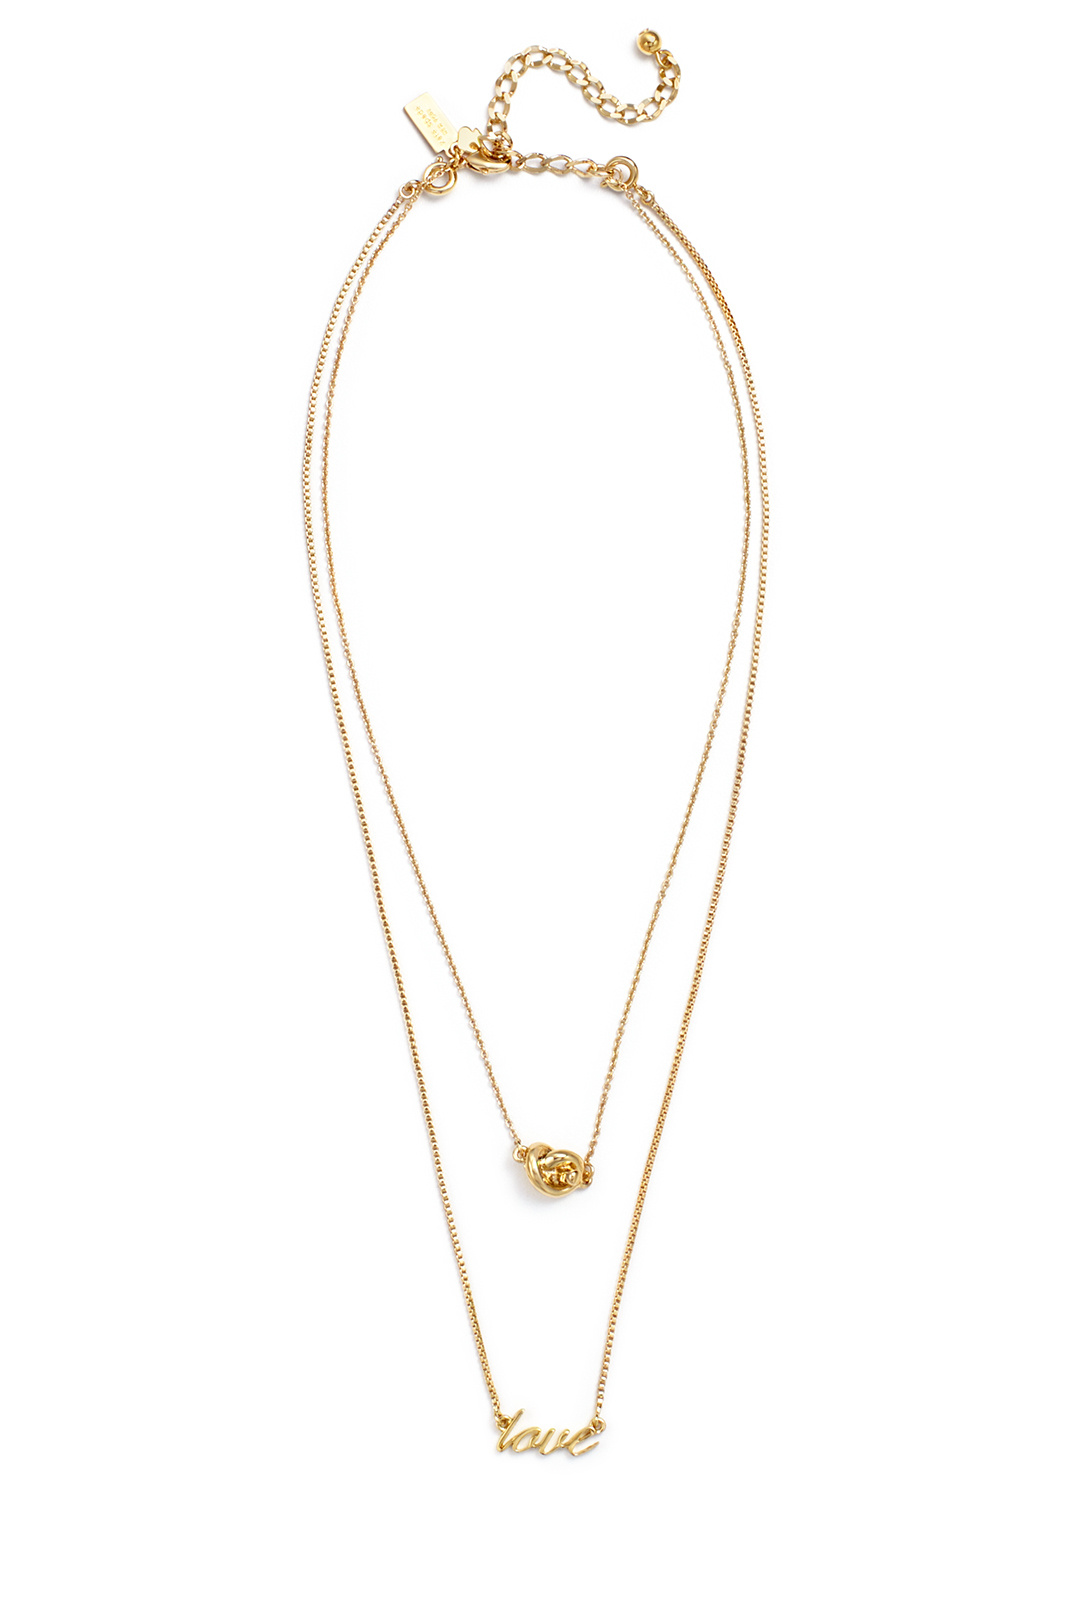 Kate spade new york accessories like a charm pendant